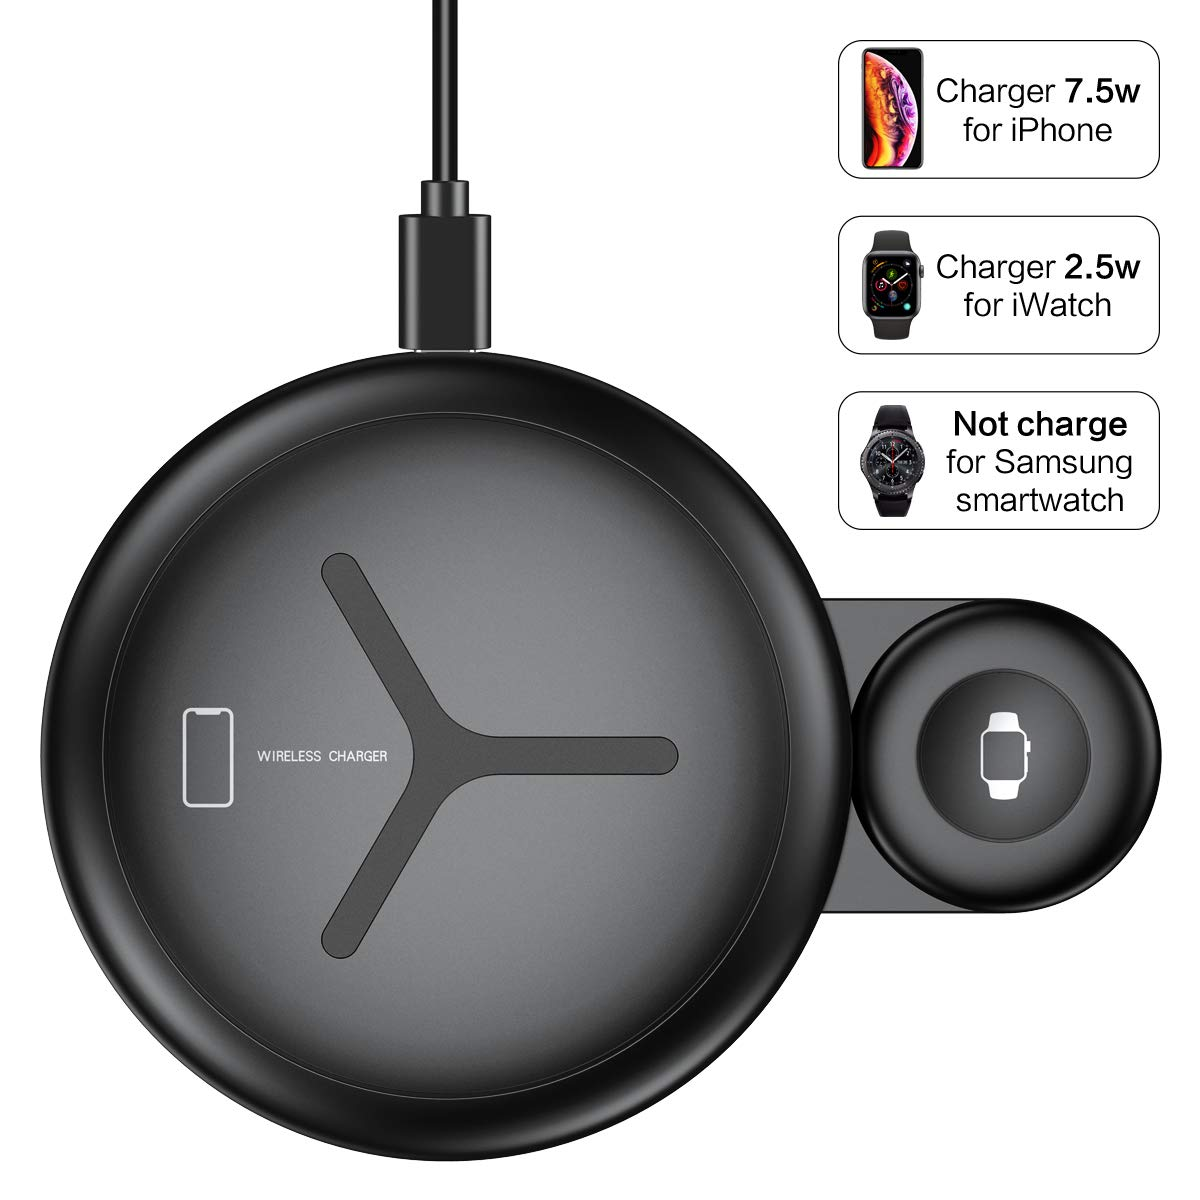 2 in 1 Wireless Charger FLOVEME 10W Wireless Charging Pad Qi Fast Wireless Charging Station Compatible for Apple Watch Series 4/3/2/1 iPhone Xs Max/XR/X/8 Plus/8 Samsung Note 9/8 and More